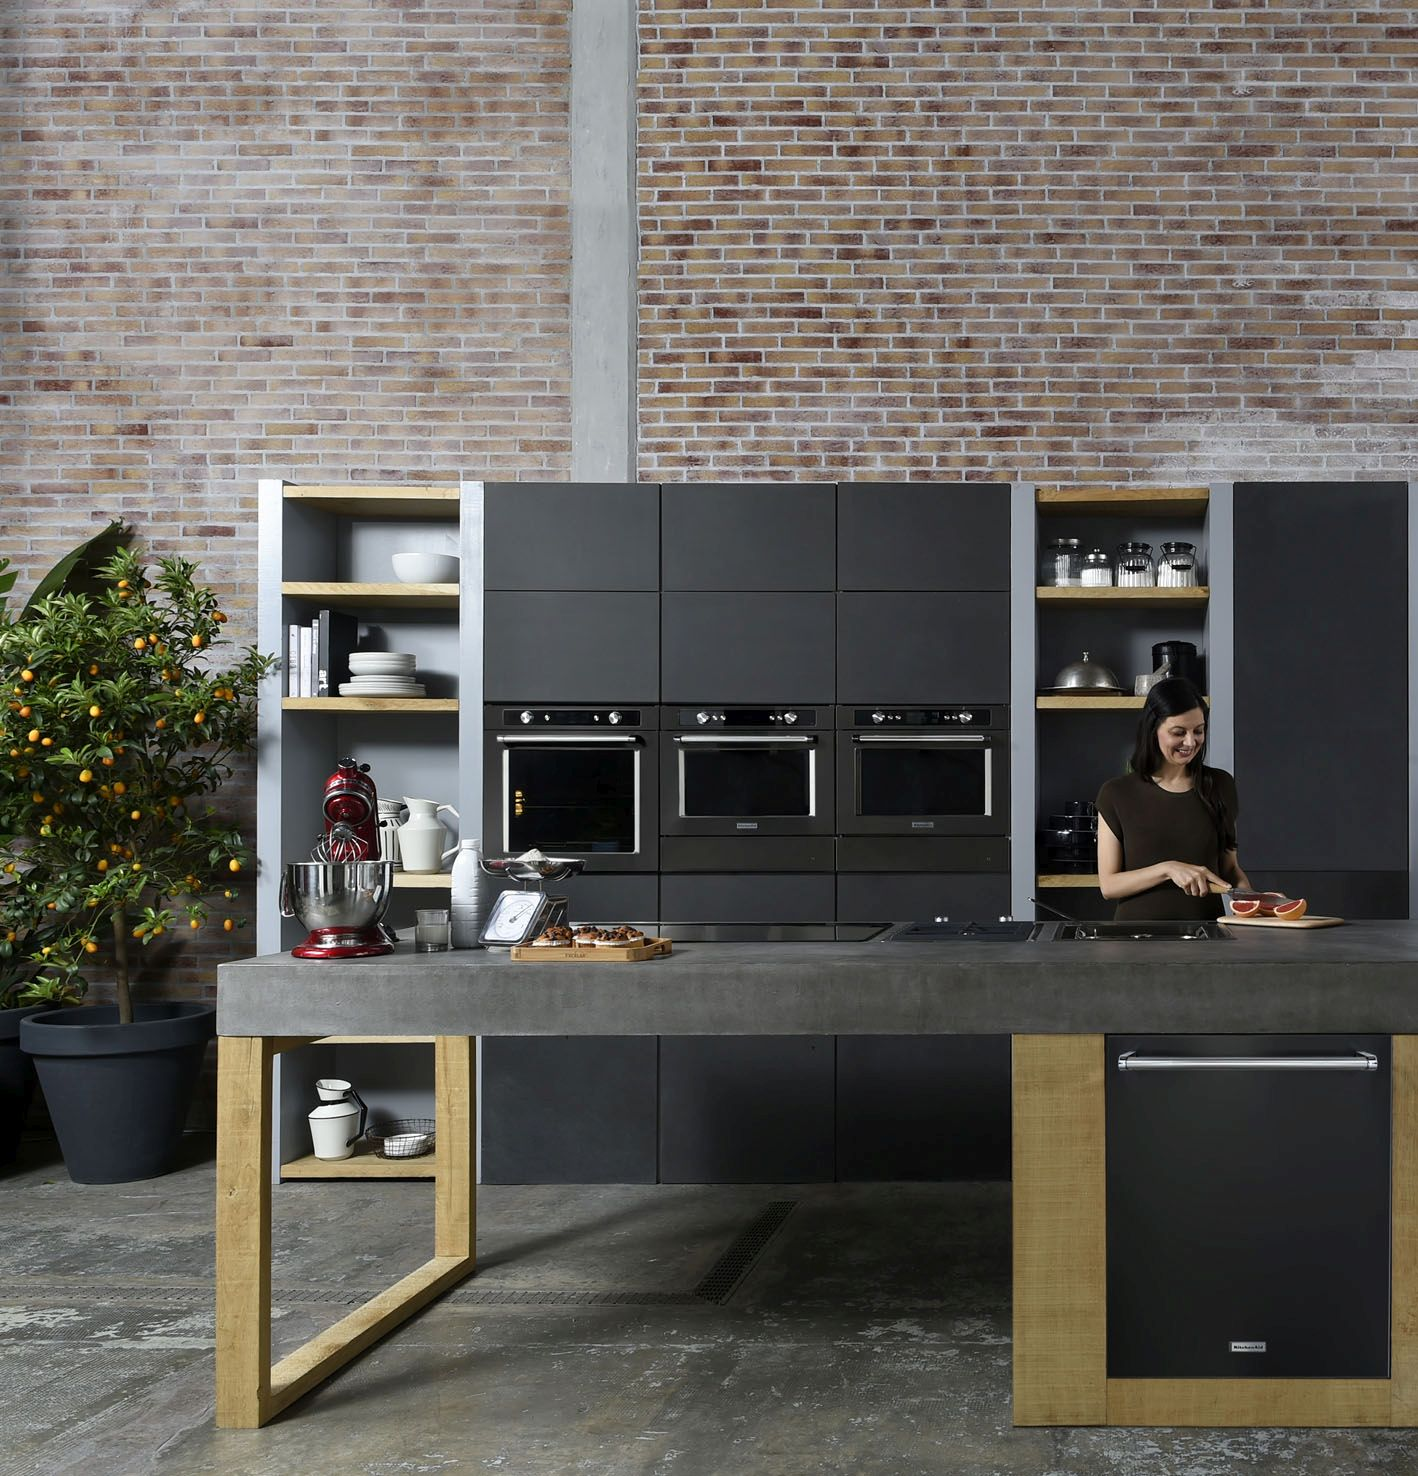 kitchenaid die farbe schwarz in der k che haus garten test. Black Bedroom Furniture Sets. Home Design Ideas